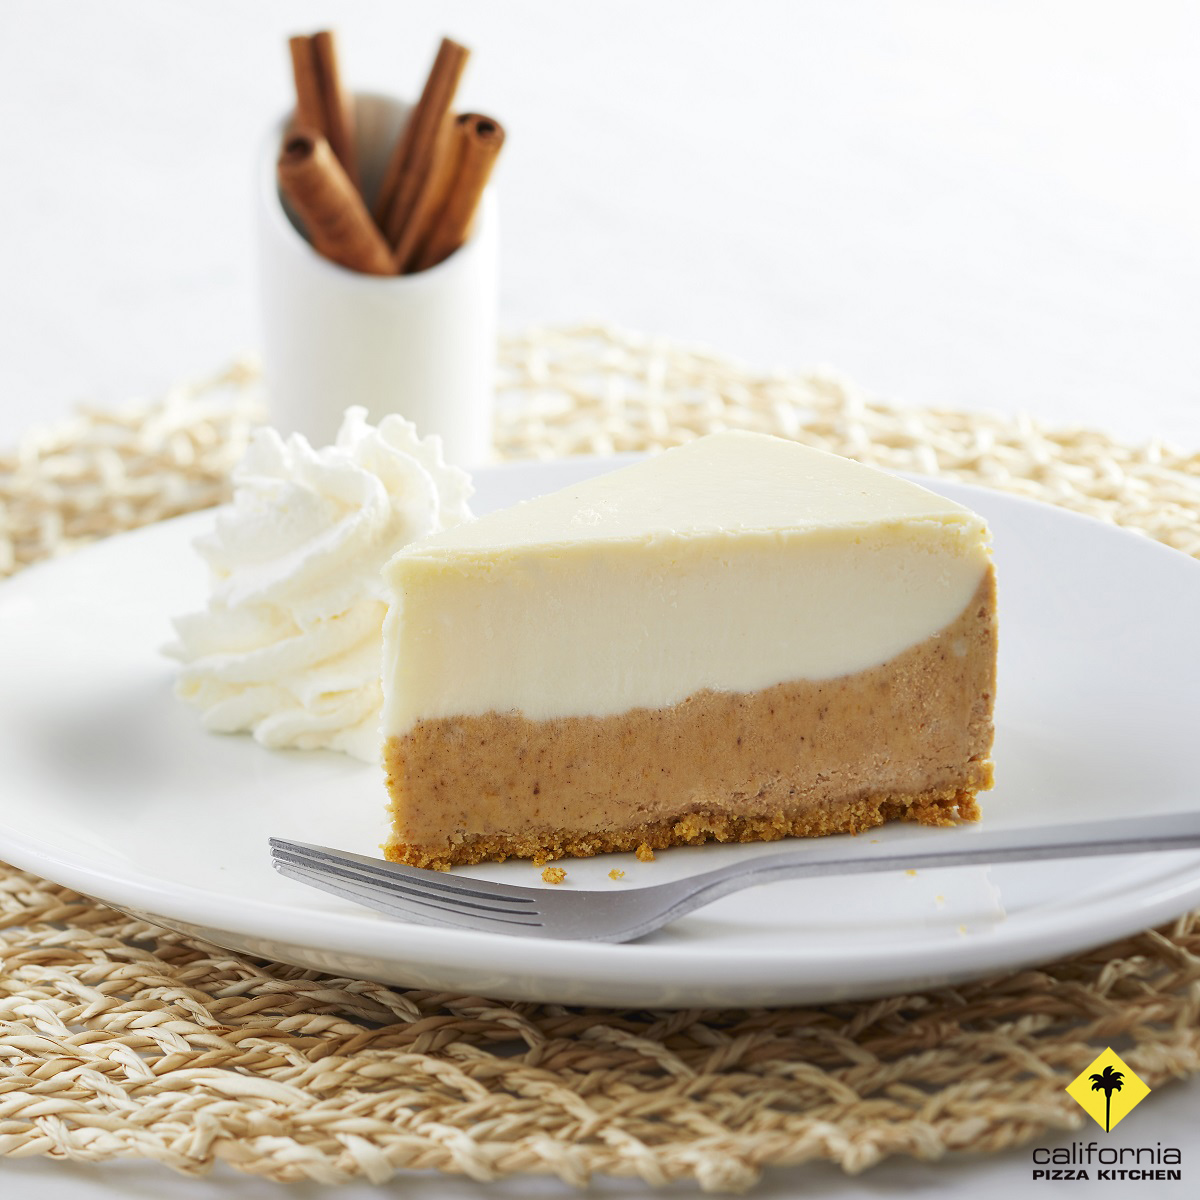 Try the Pumpkin Cheesecake from California Pizza Kitchen